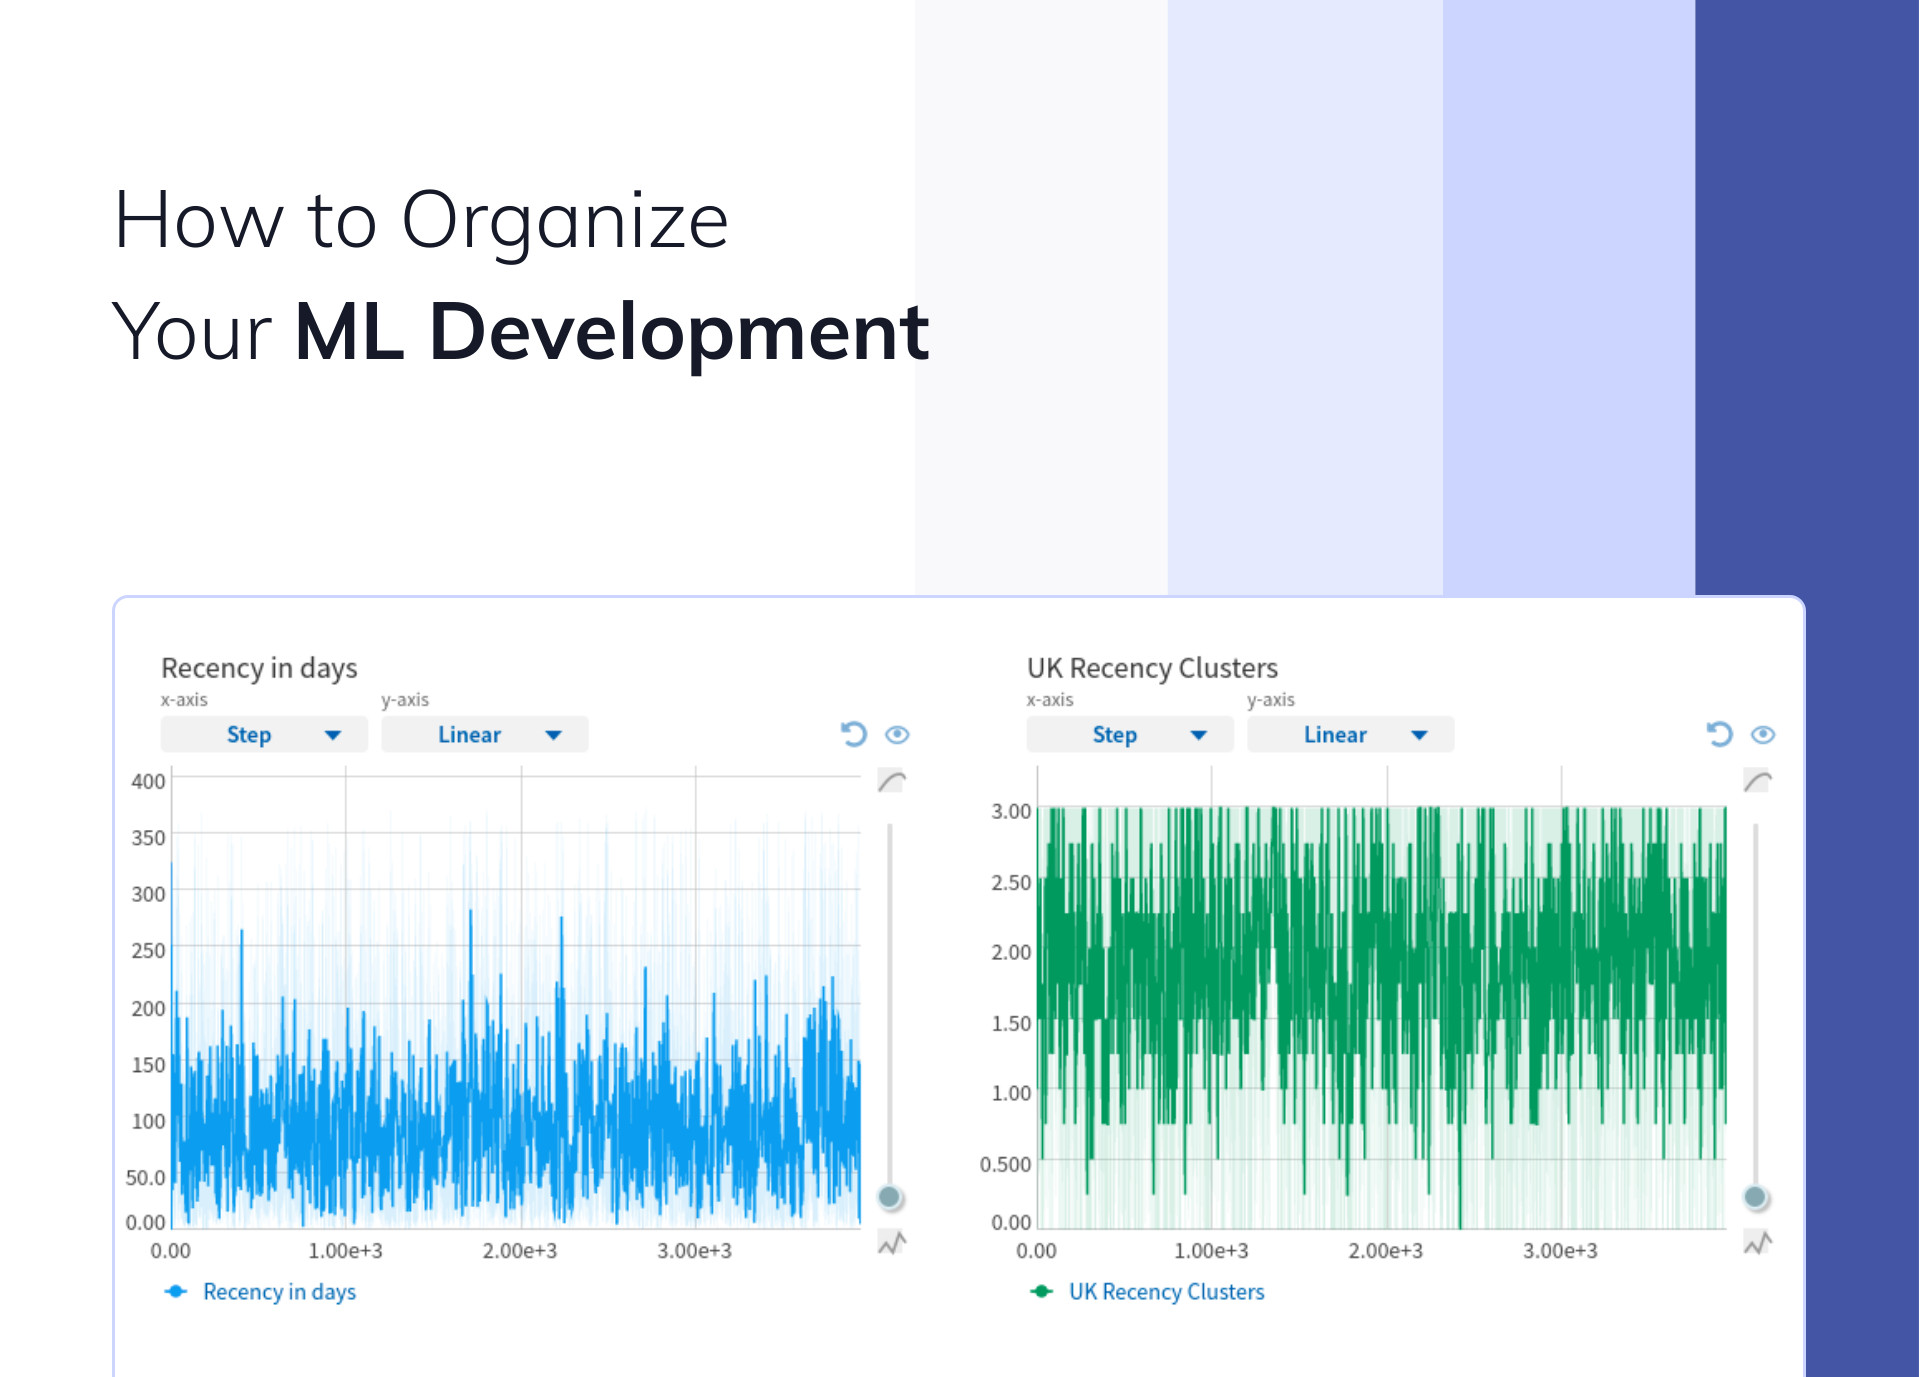 How to Organize Your ML Development in an Efficient Way